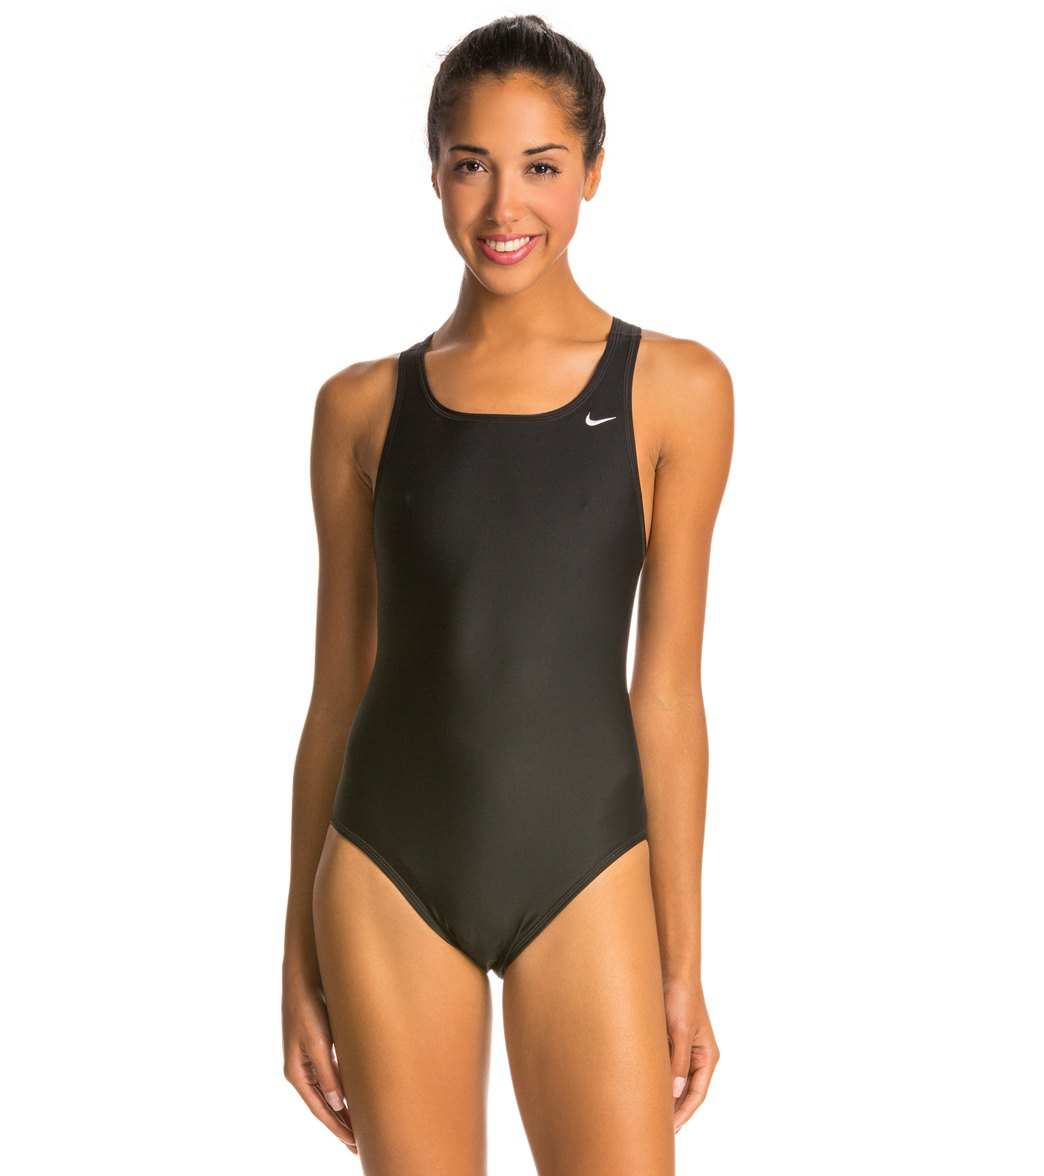 Nike Swim Nylon Core Solids Fast Back Tank Swimsuit at SwimOutlet.com -  Free Shipping